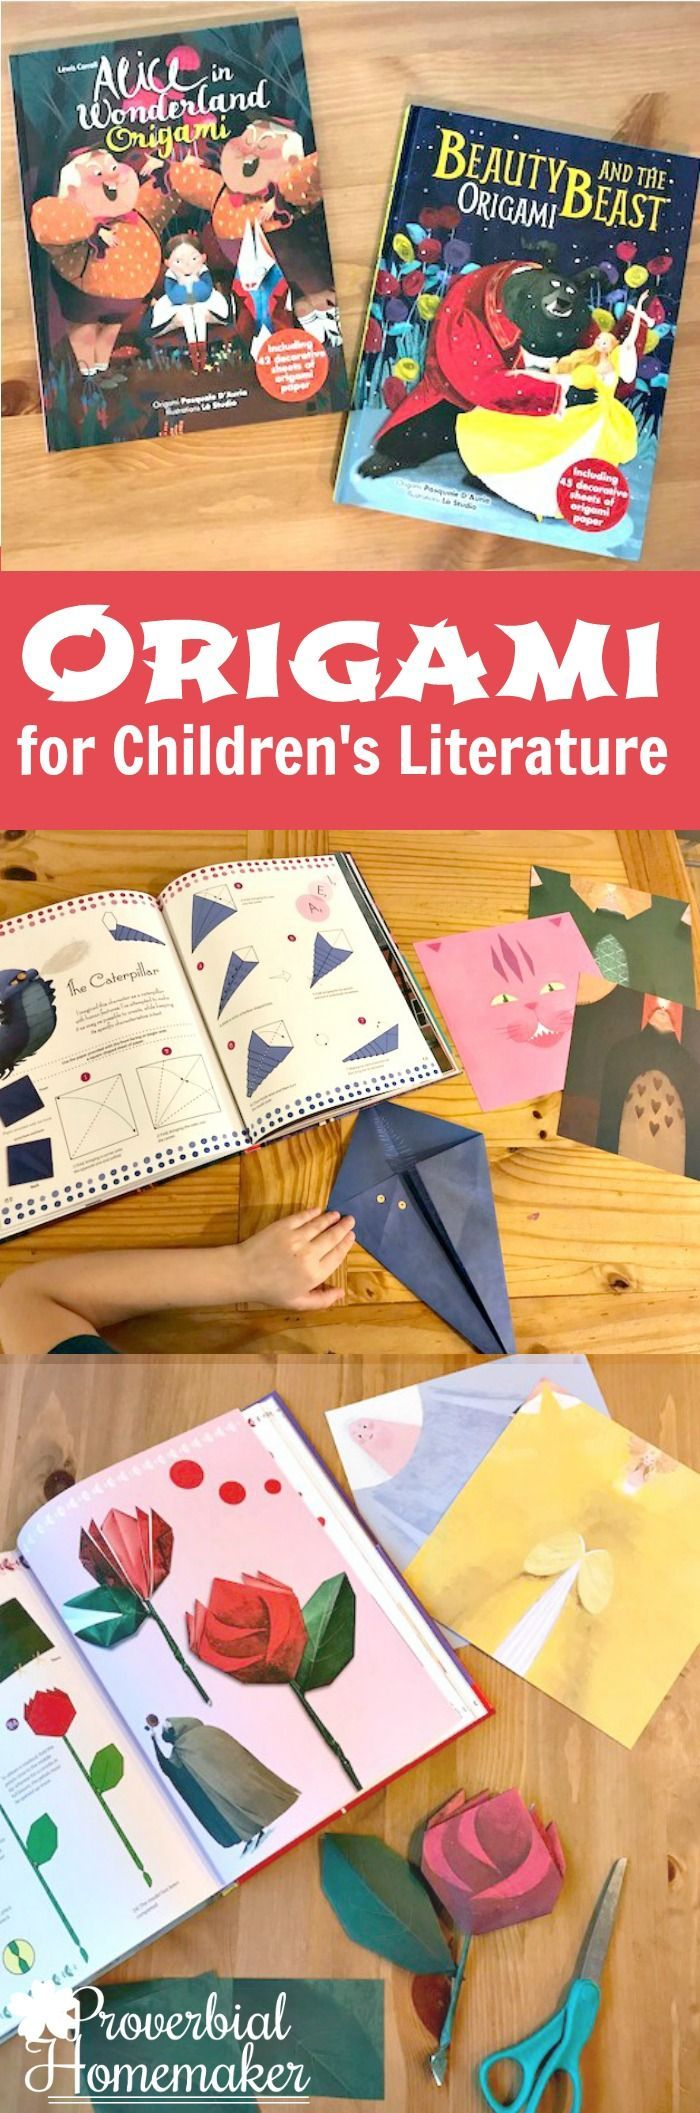 Kids Origami Sets for Children�s Literature via @TaunaM